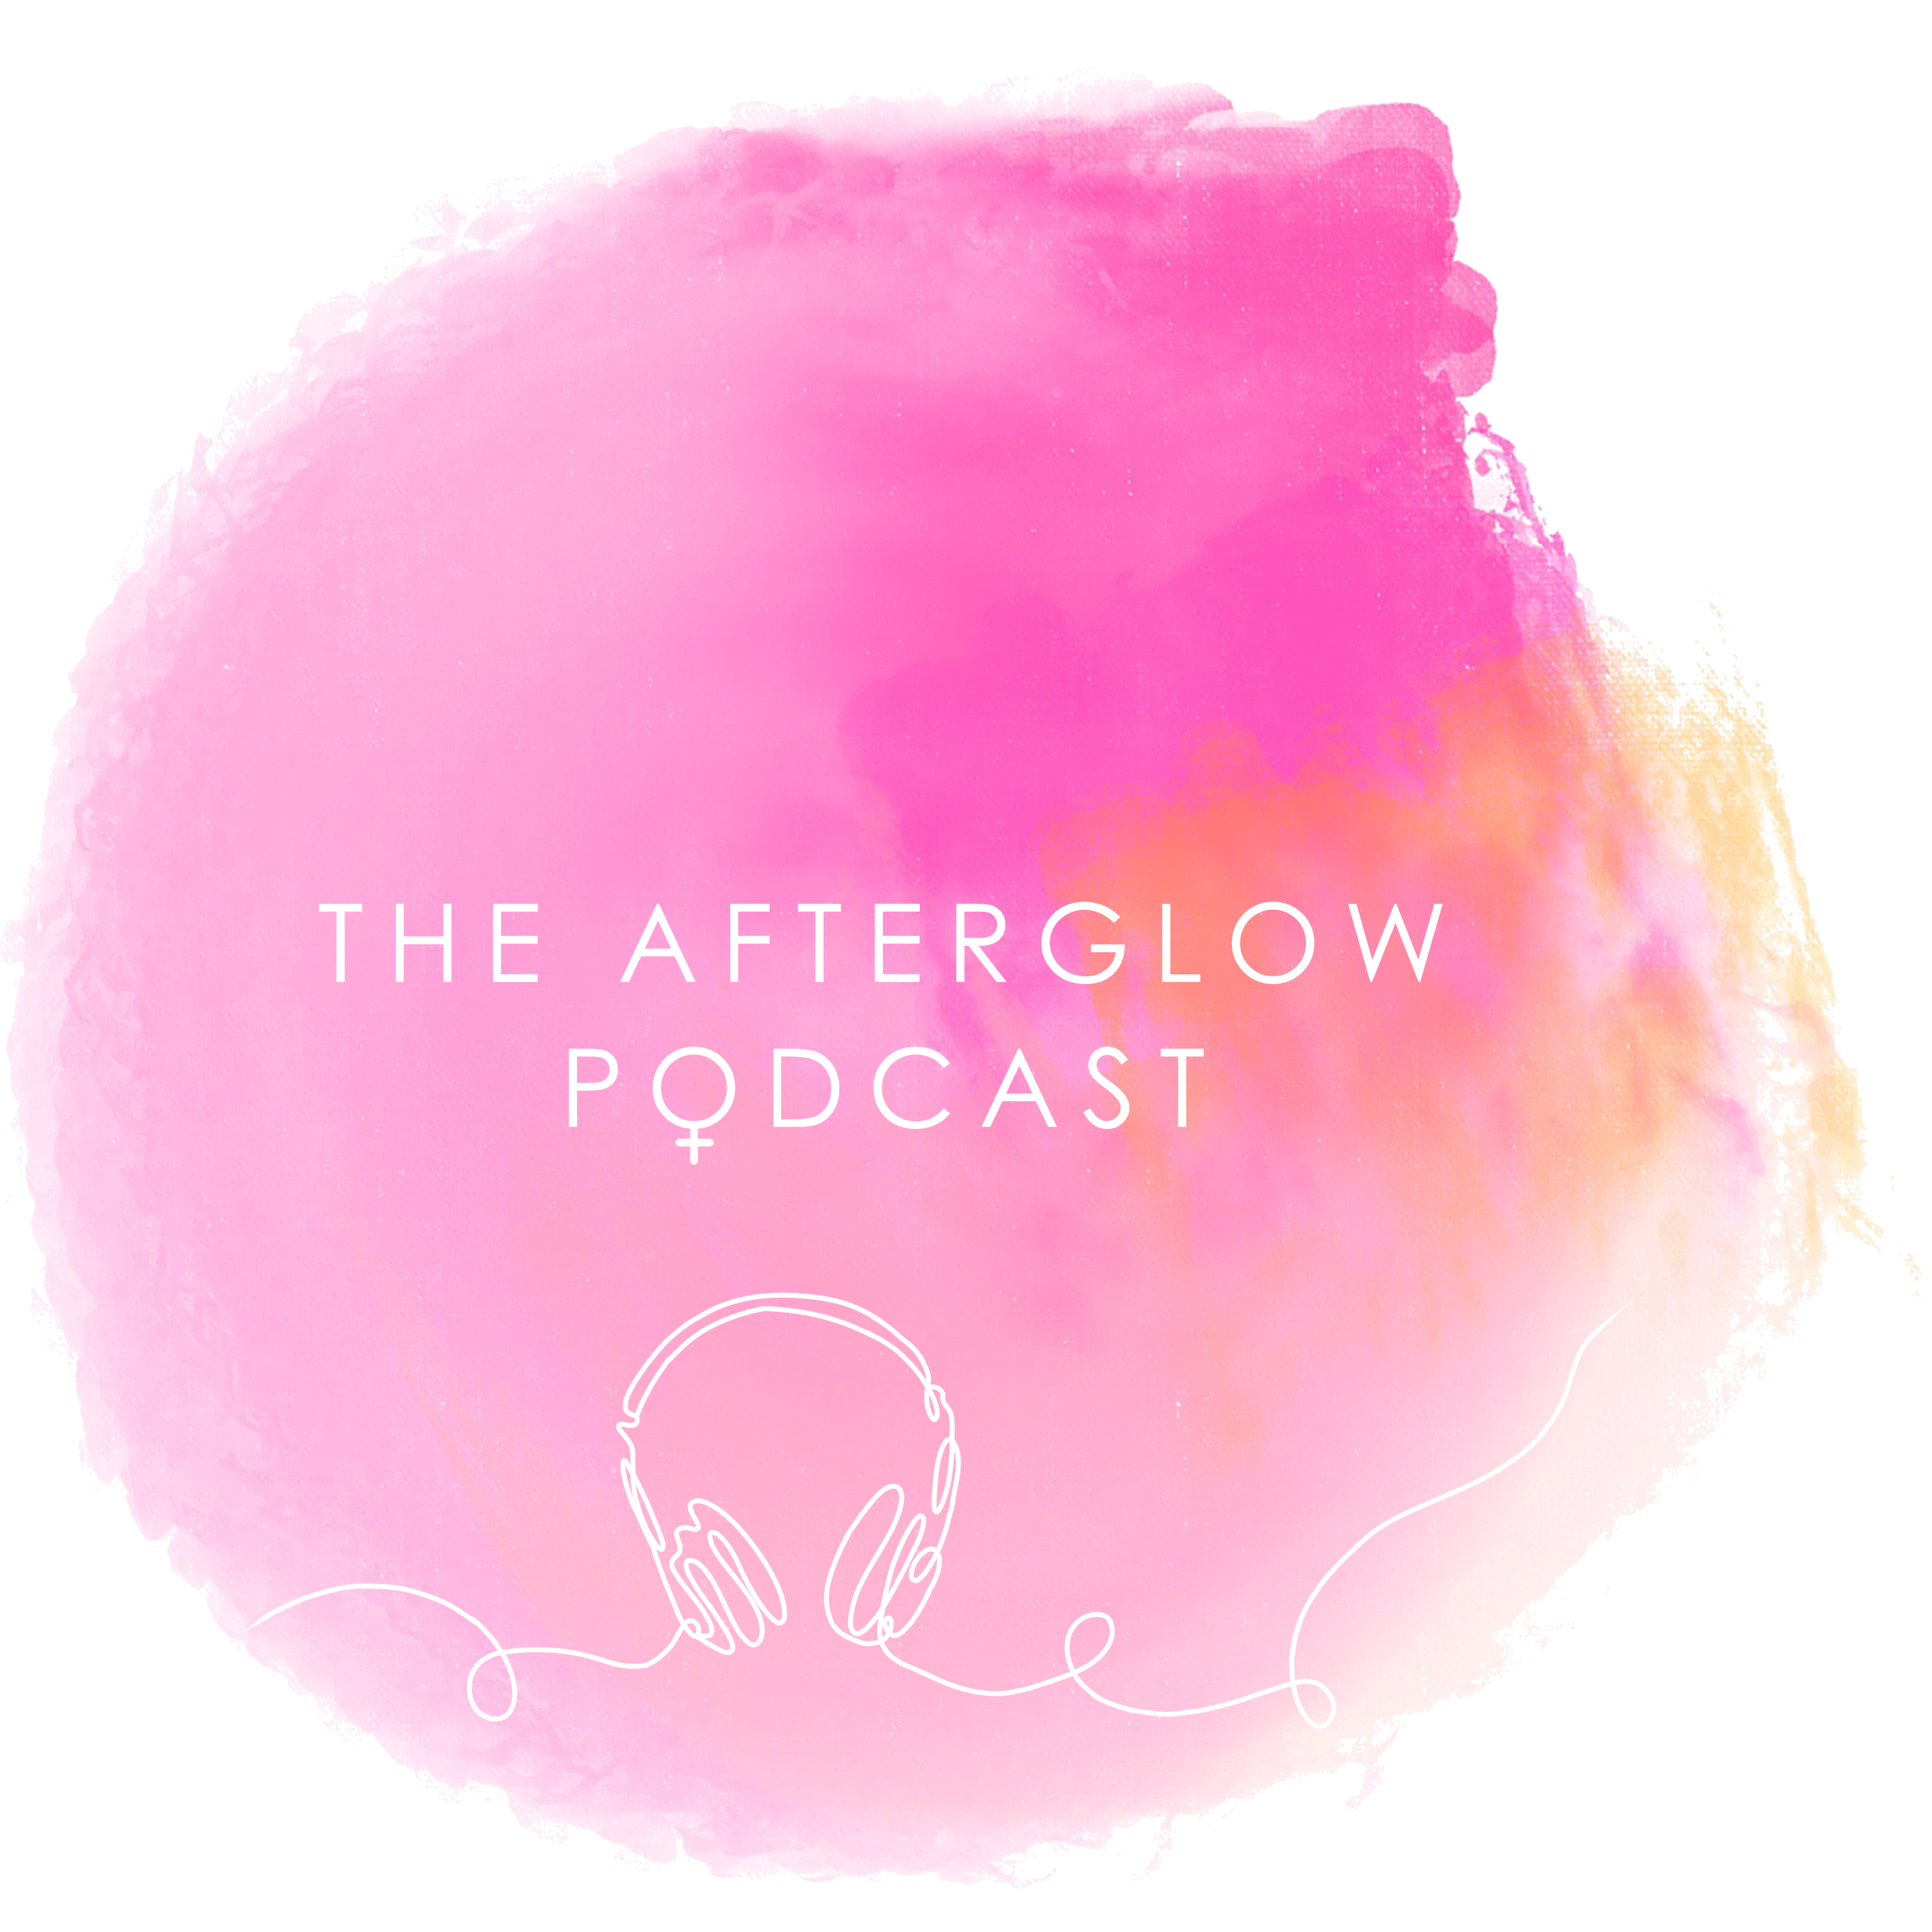 The Afterglow Podcast